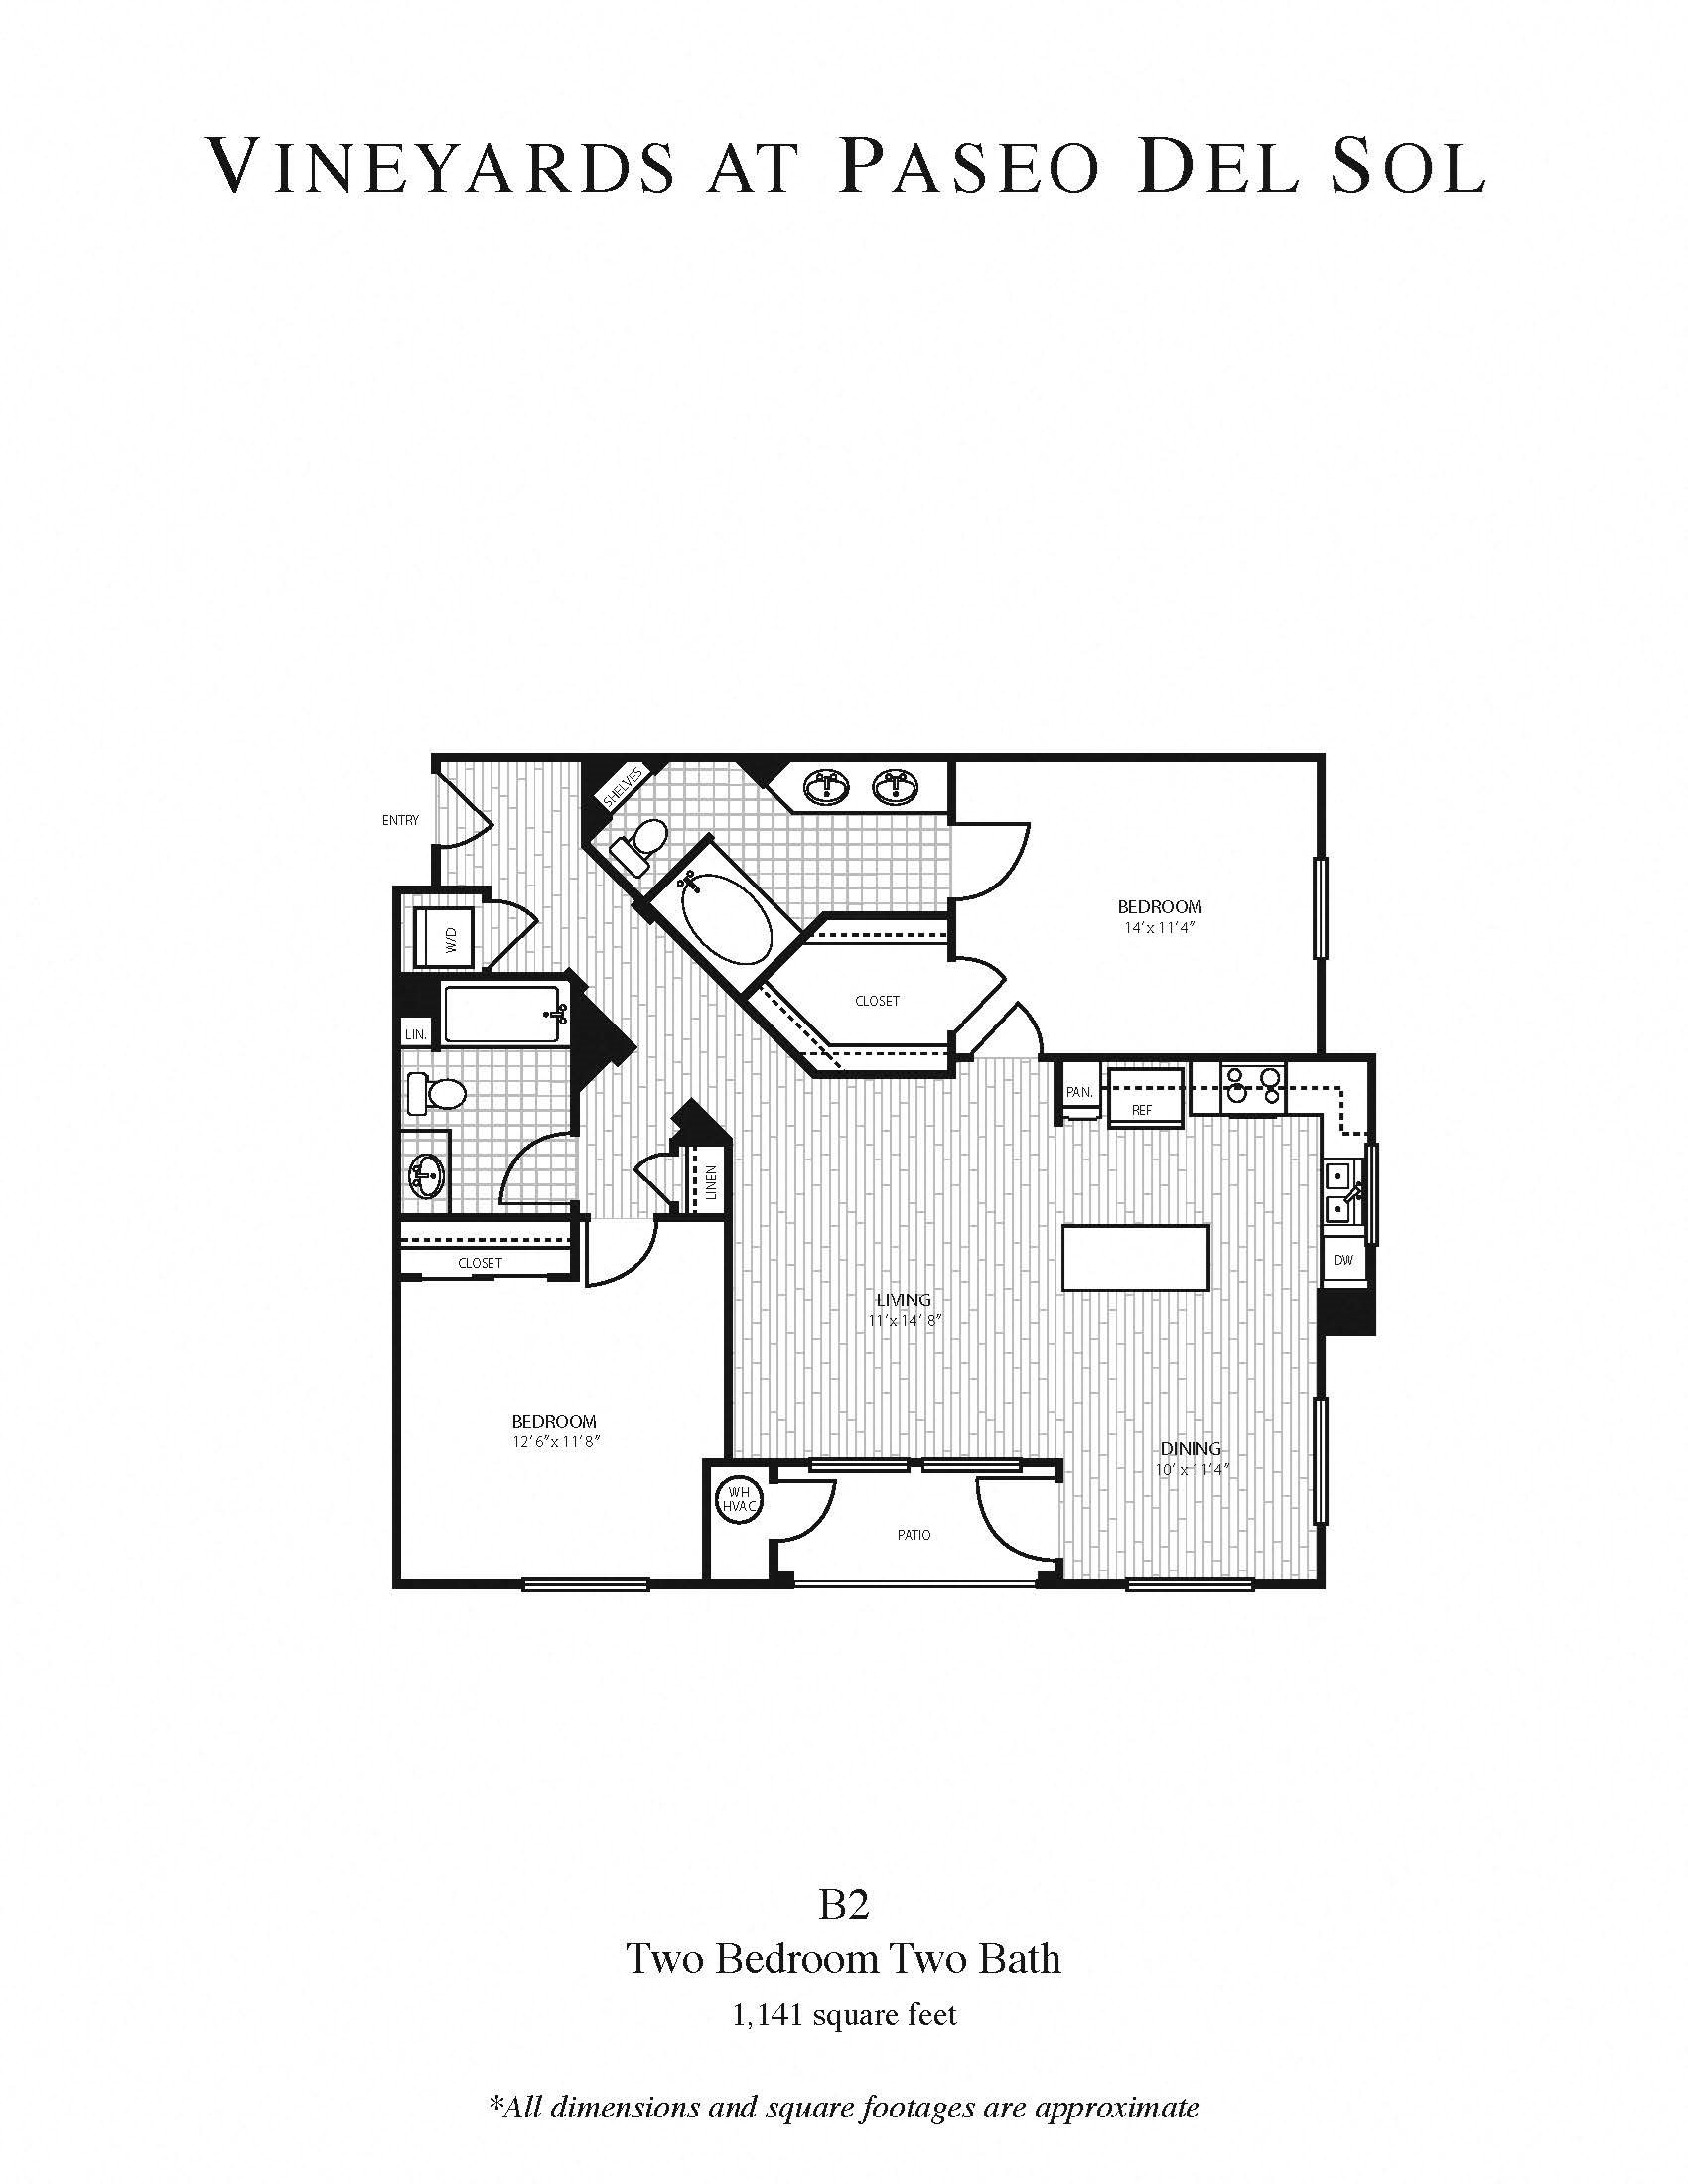 2b/2b - Large Floor Plan 5